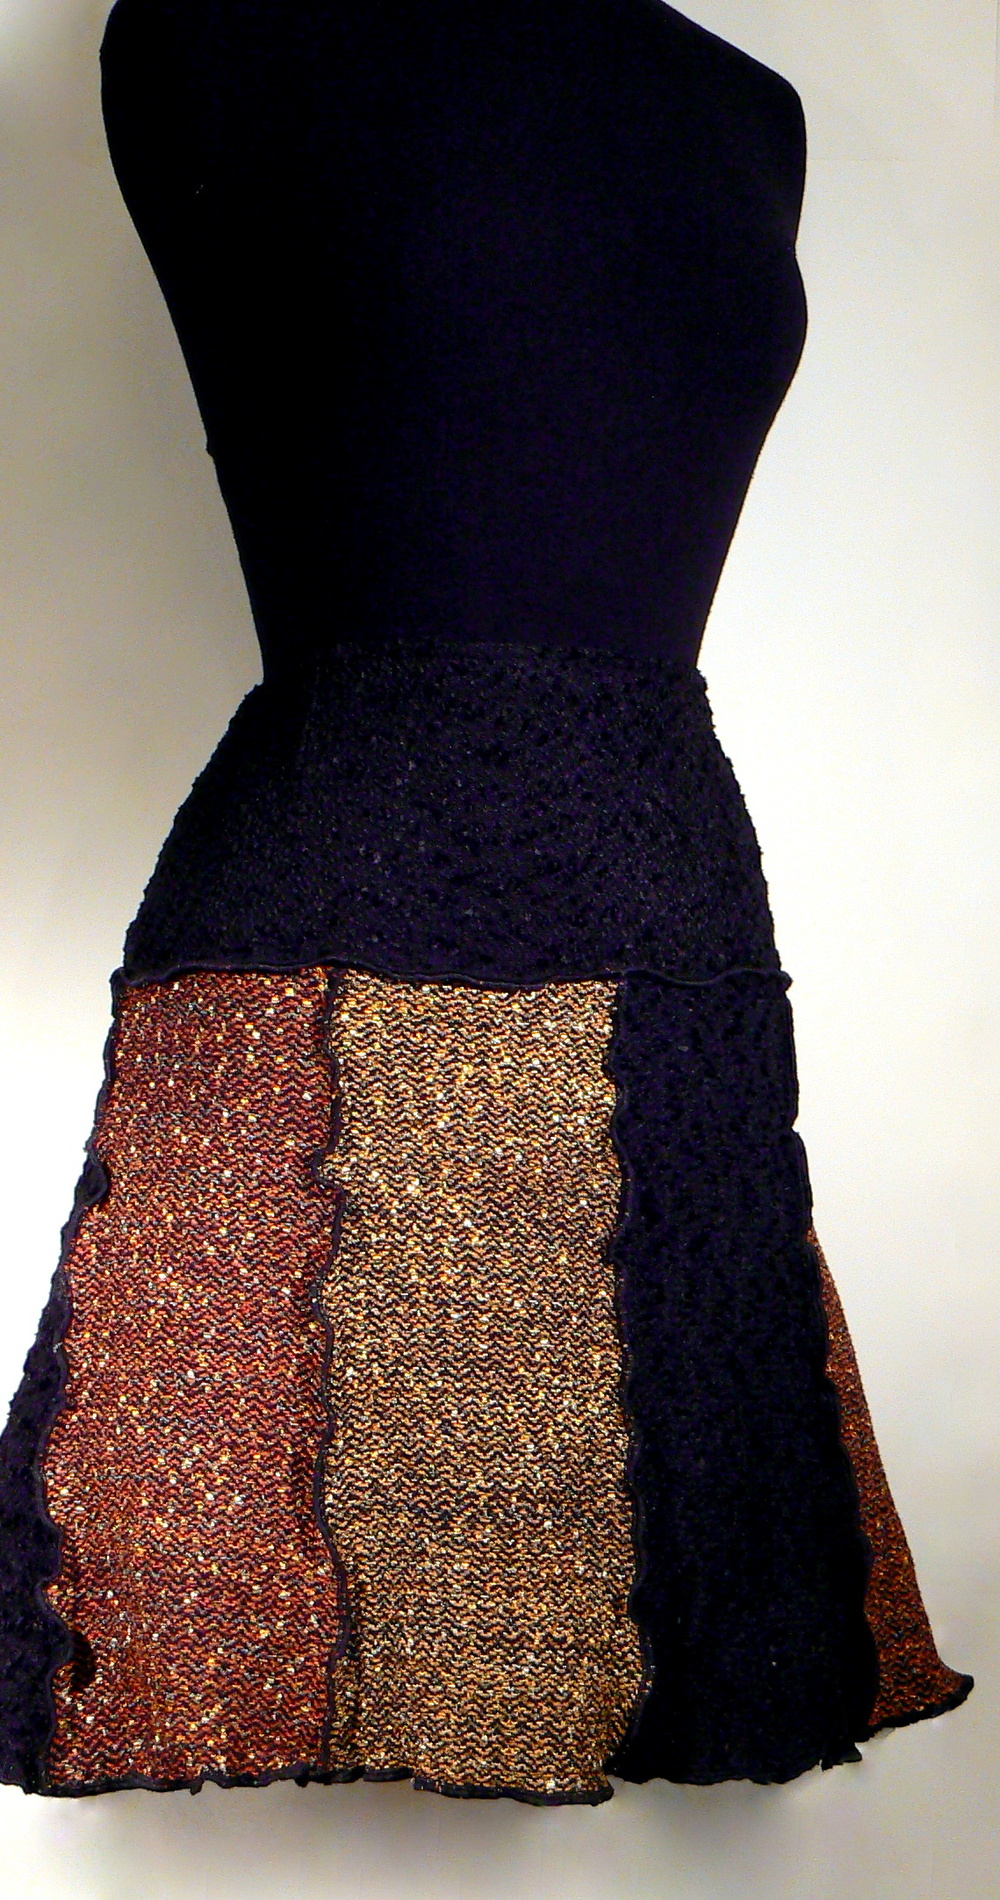 Handwoven Skirt, Kathleen Weir-West 12-001.JPG